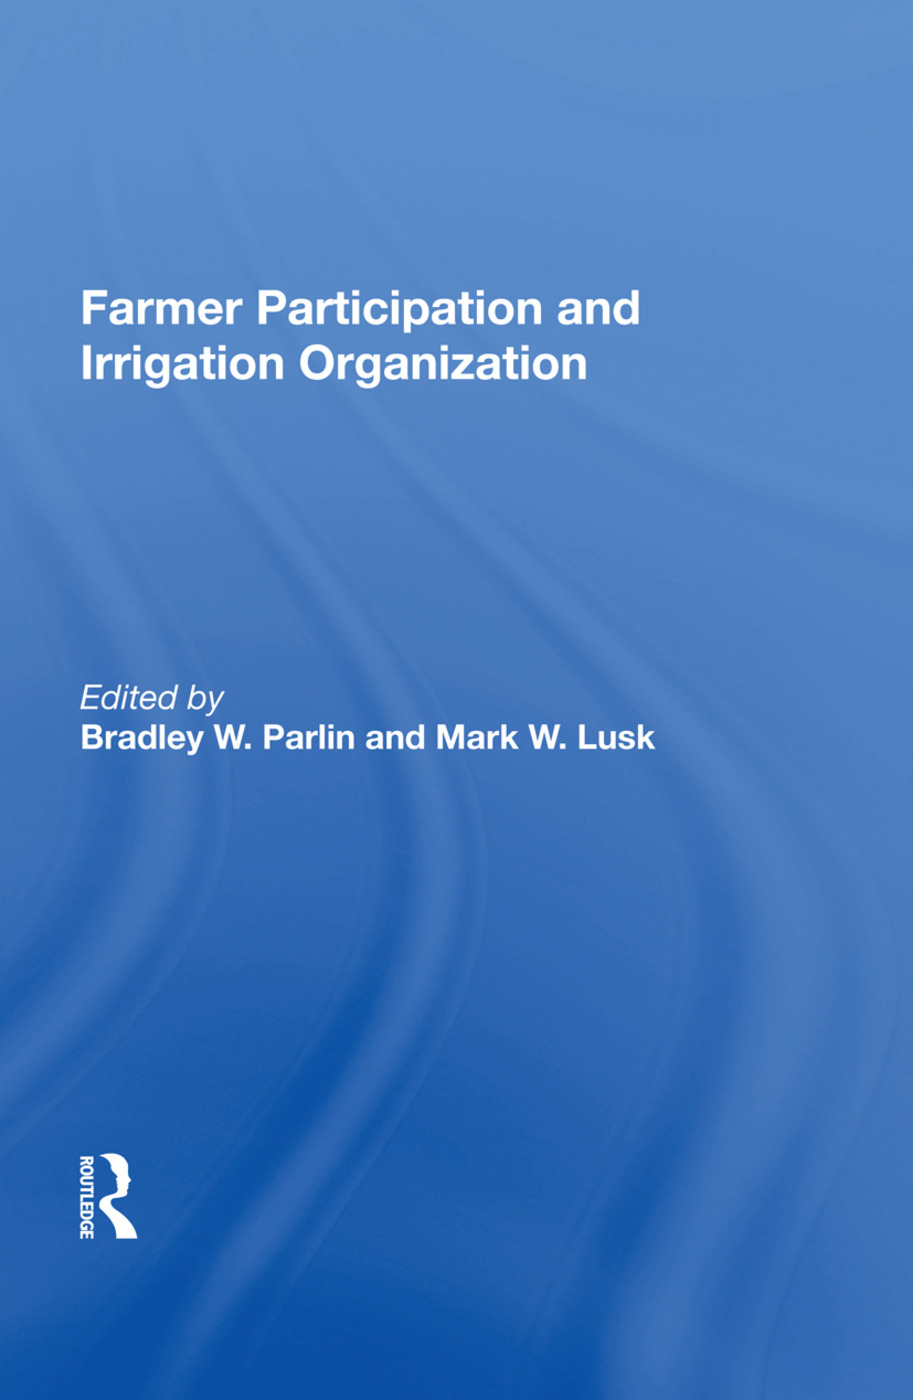 Farmer Participation and Irrigation Organization